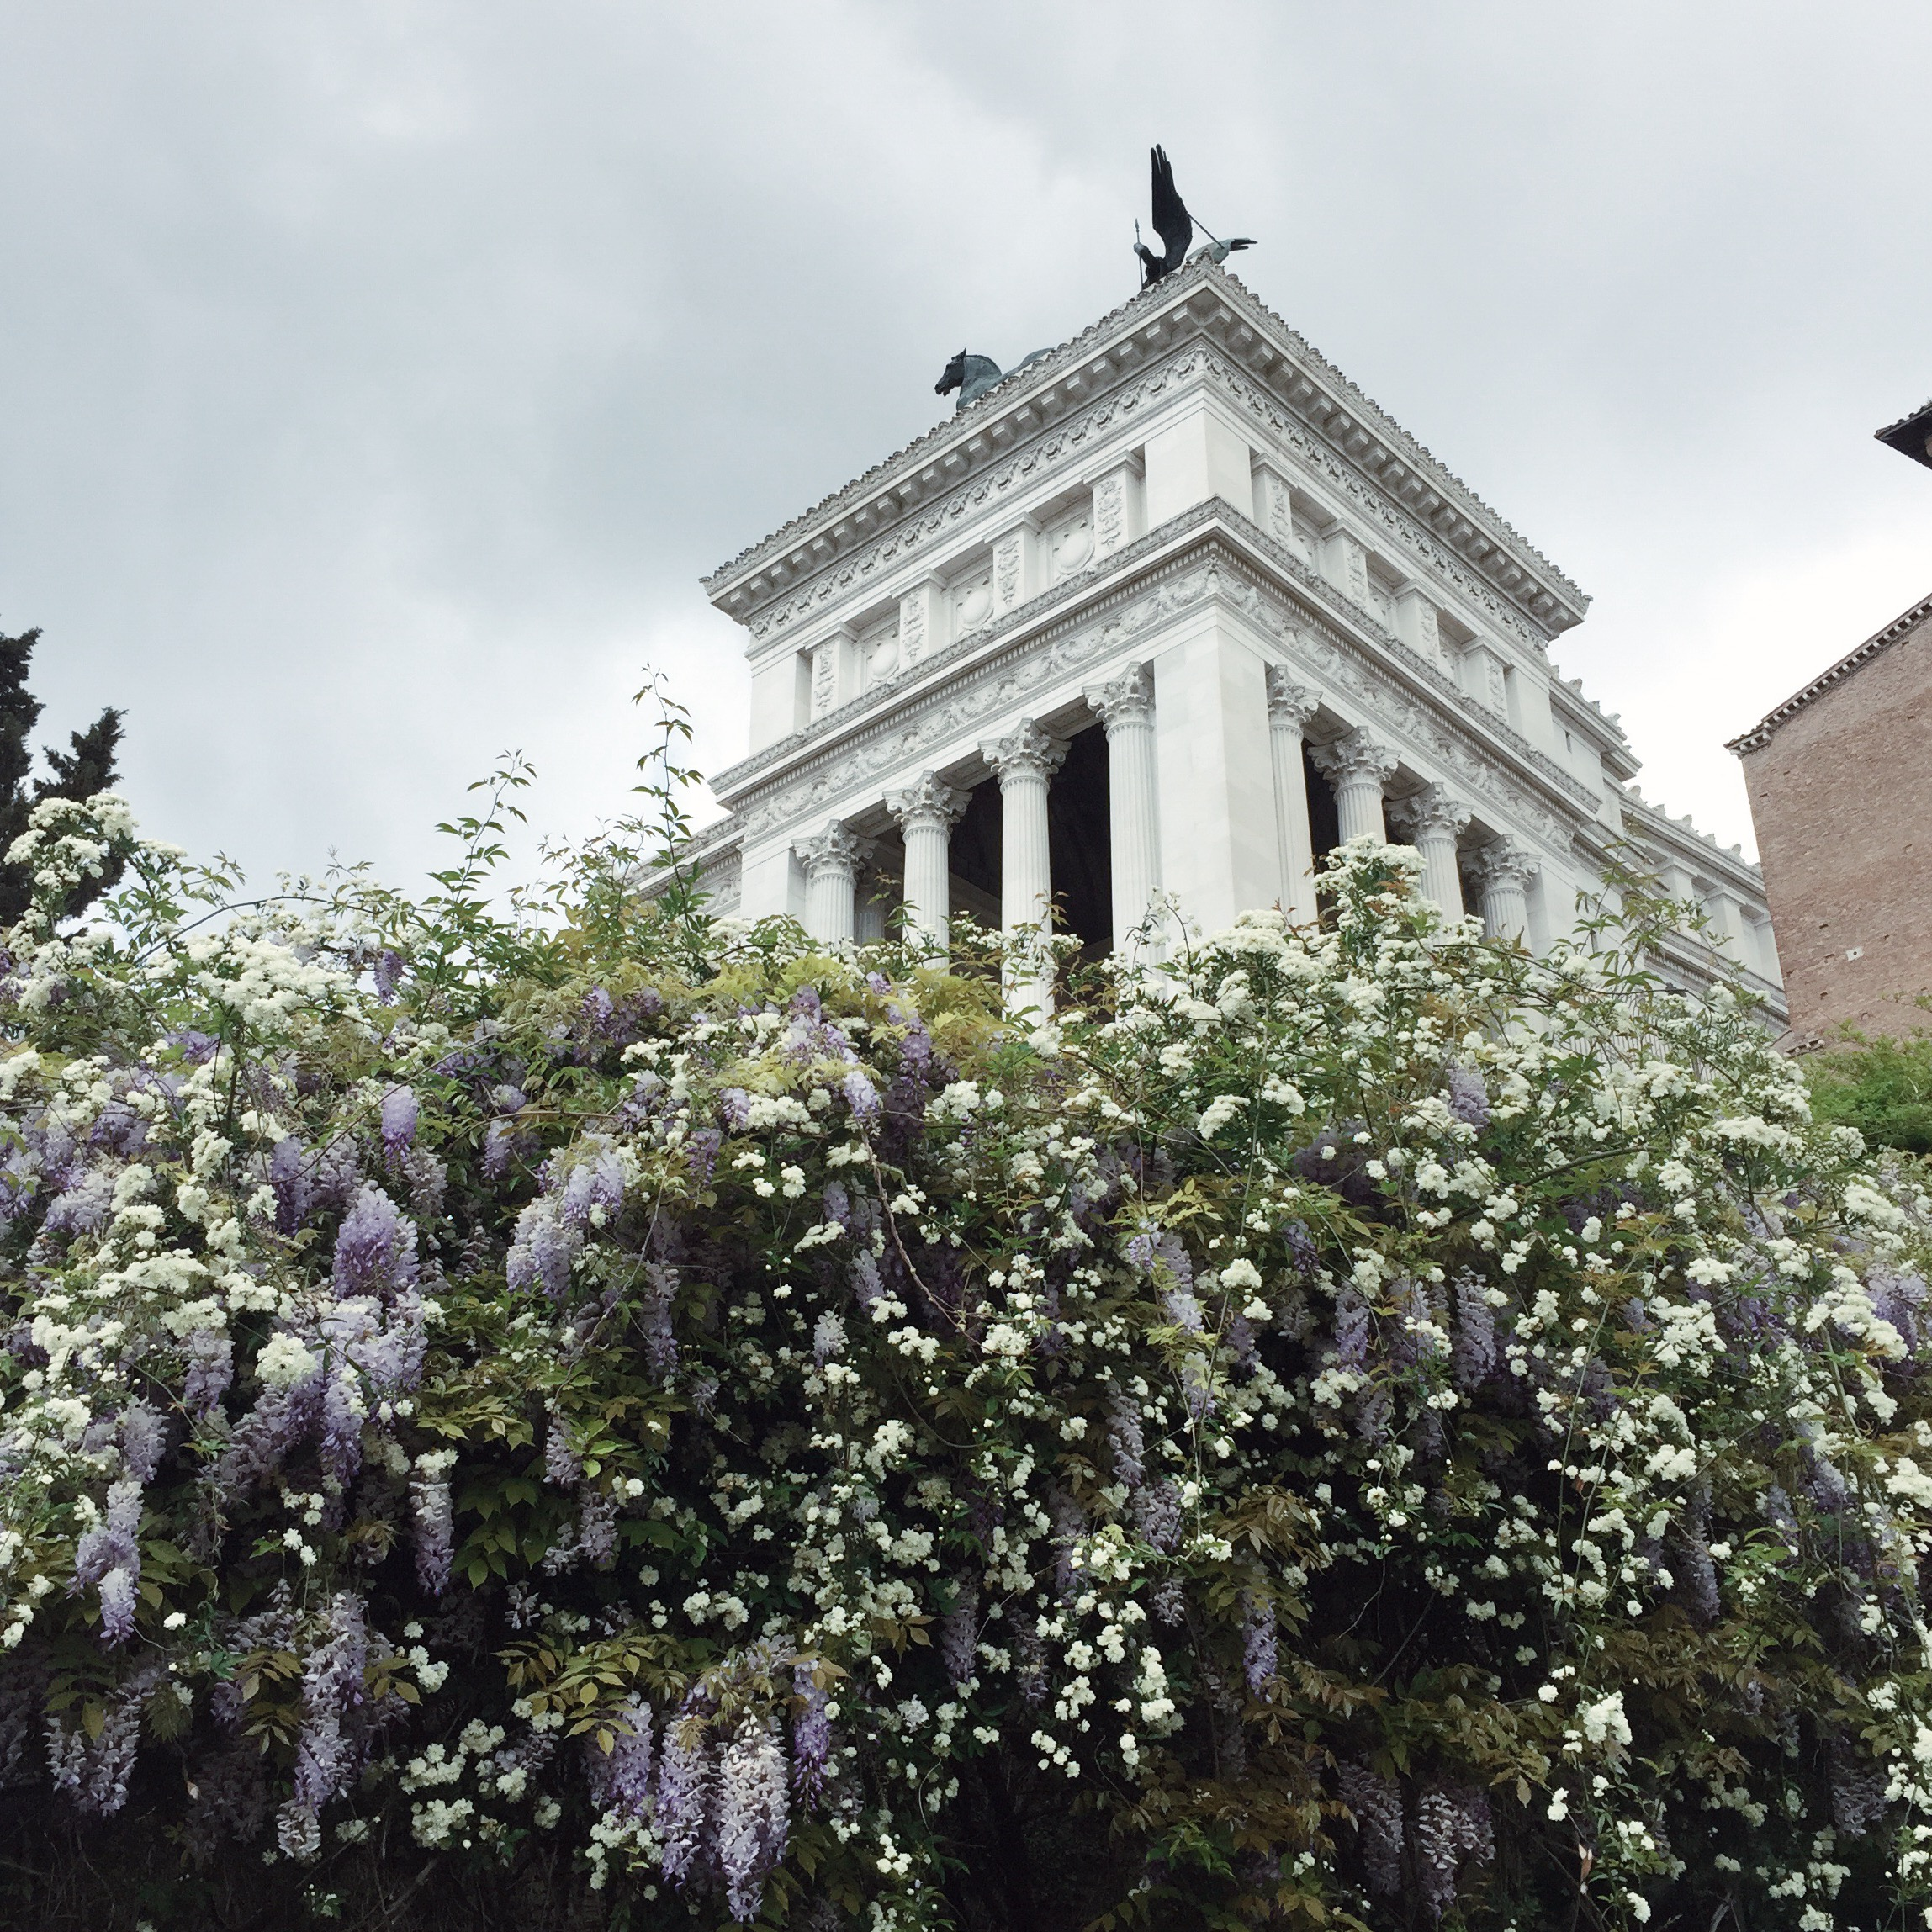 Roses and wisteria in Rome